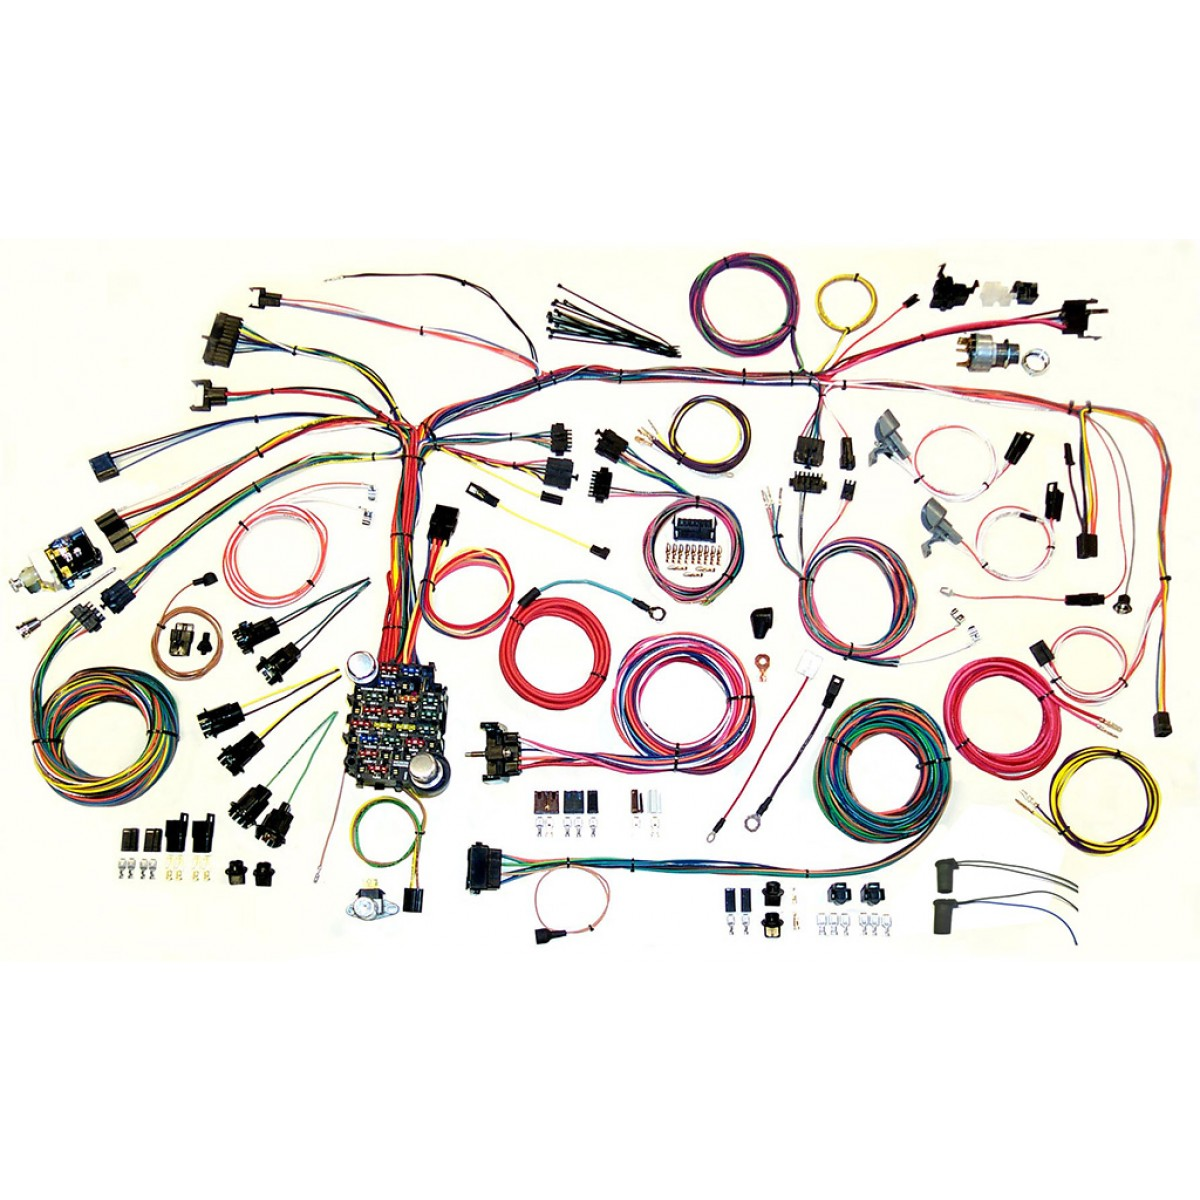 firebird wire harness complete wiring harness kit 1967 1968 firebird part 500886 1967 1968 pontiac firbird complete wiring harness kit 1967 1968 firebird engine wiring harness at eliteediting.co